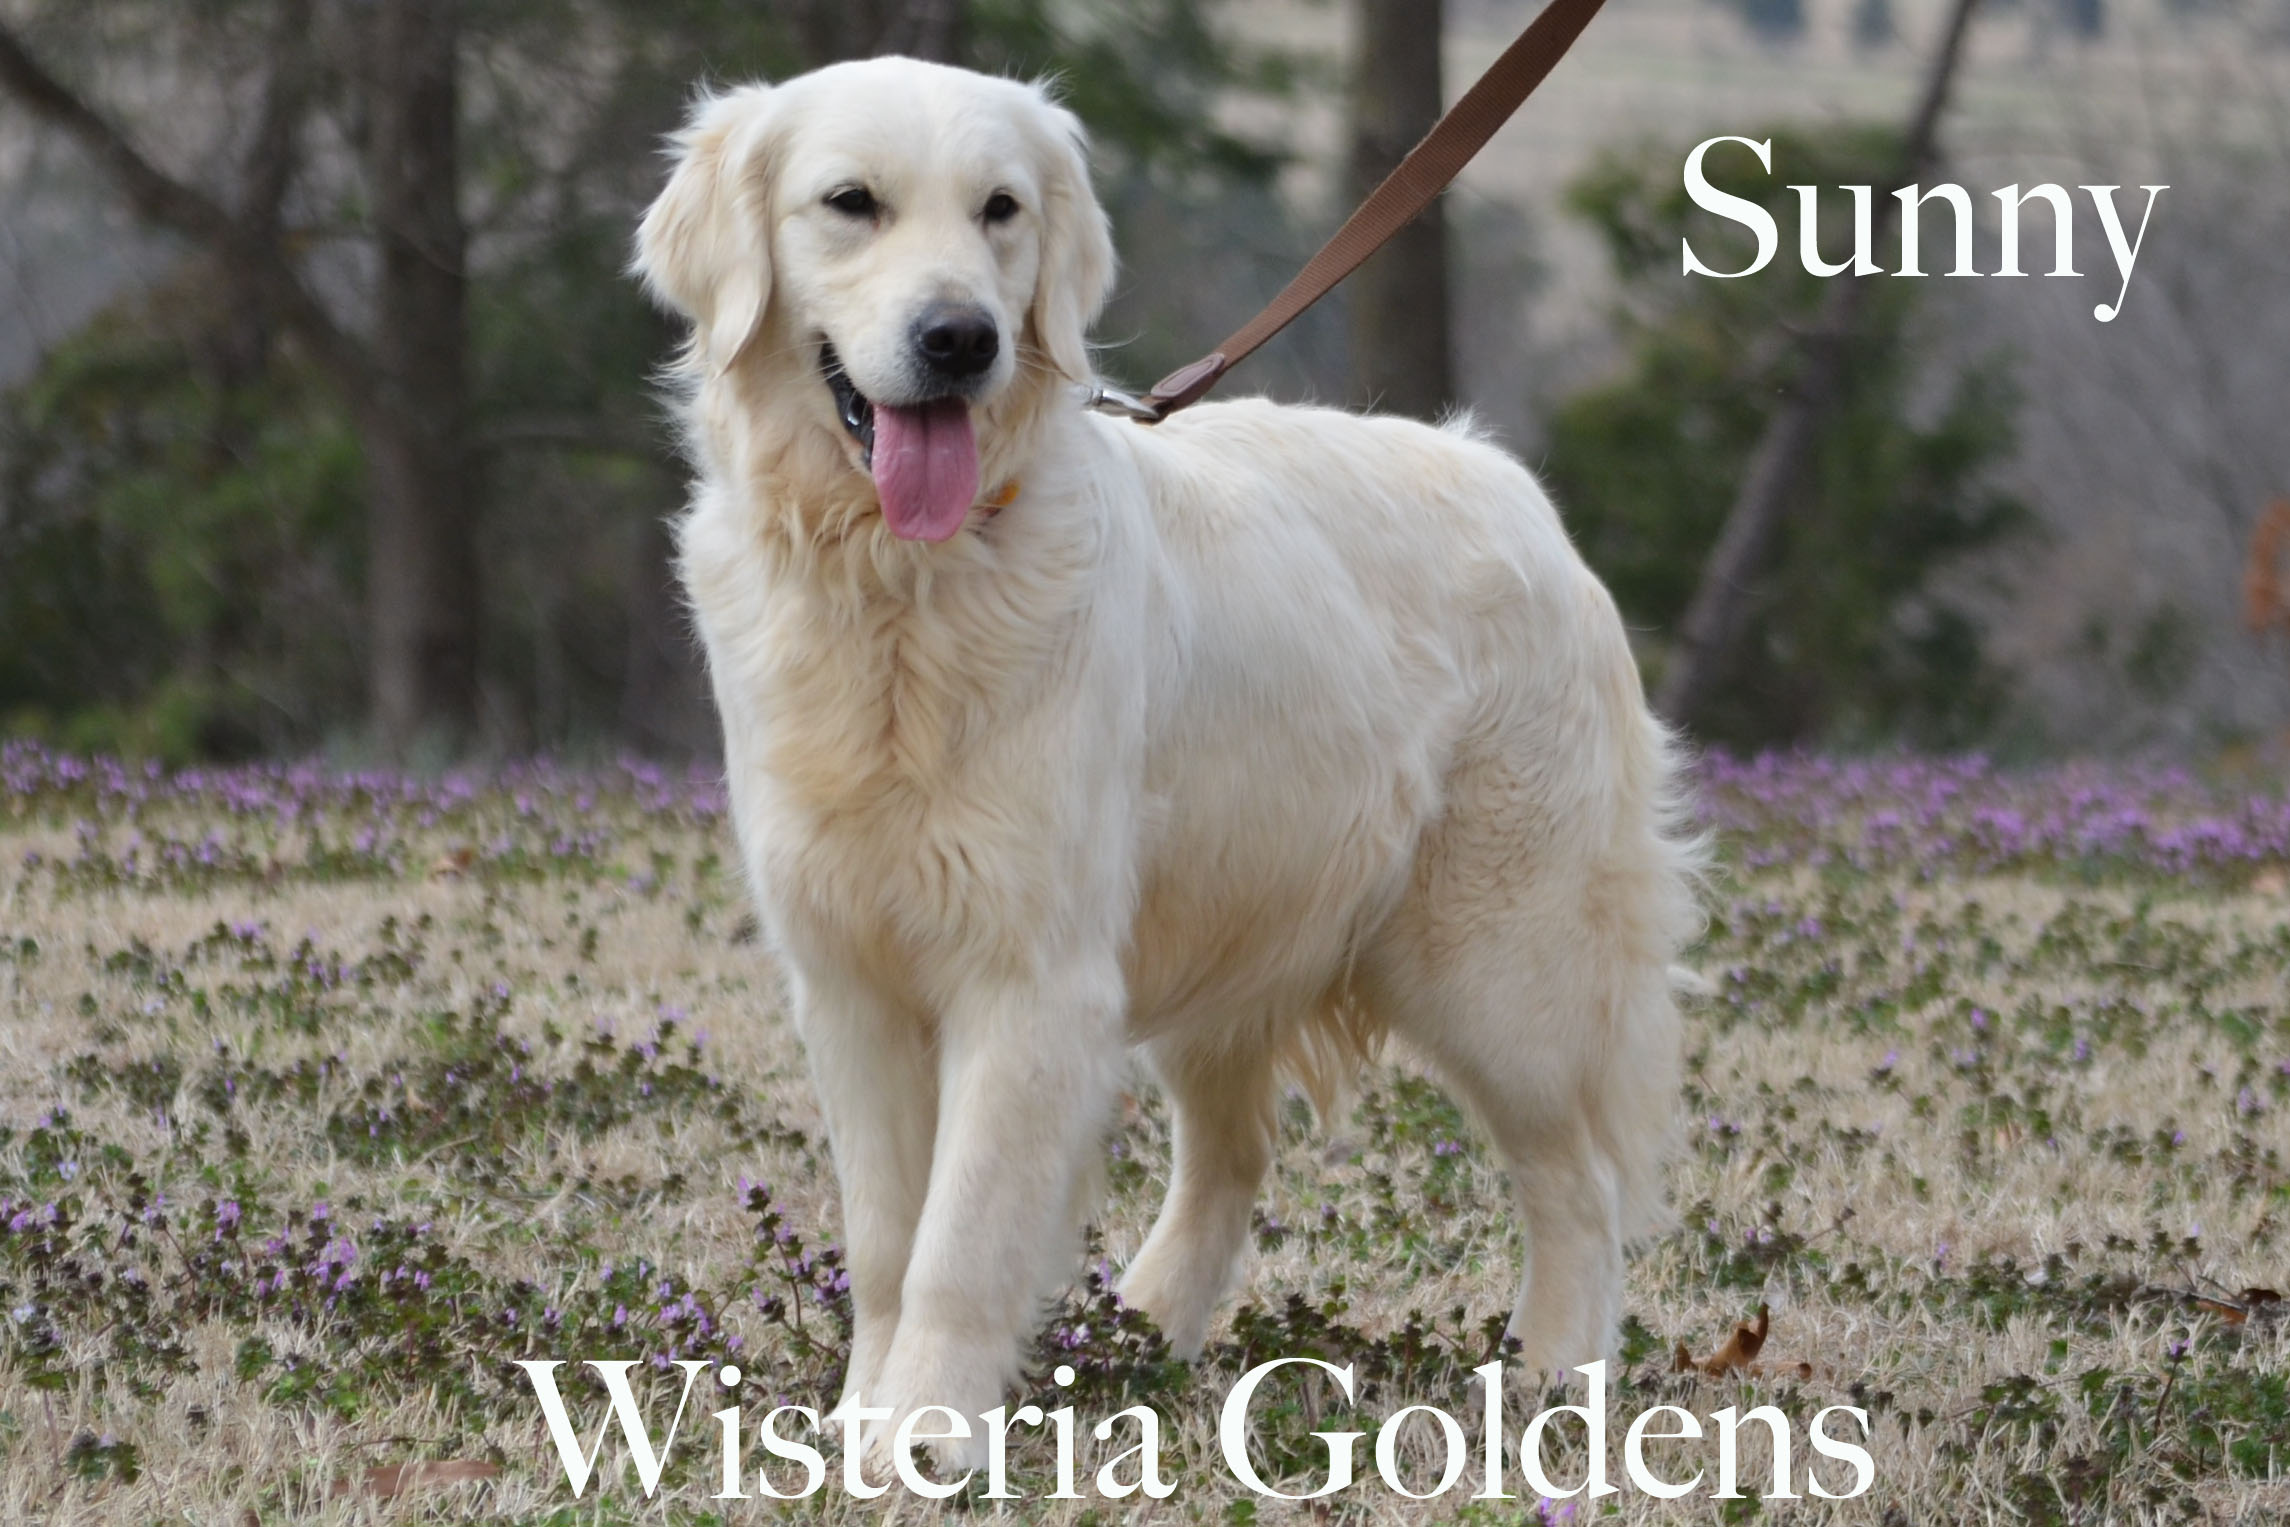 Sunny_0043-full-english-creme-golden-retriever-wisteria-goldens